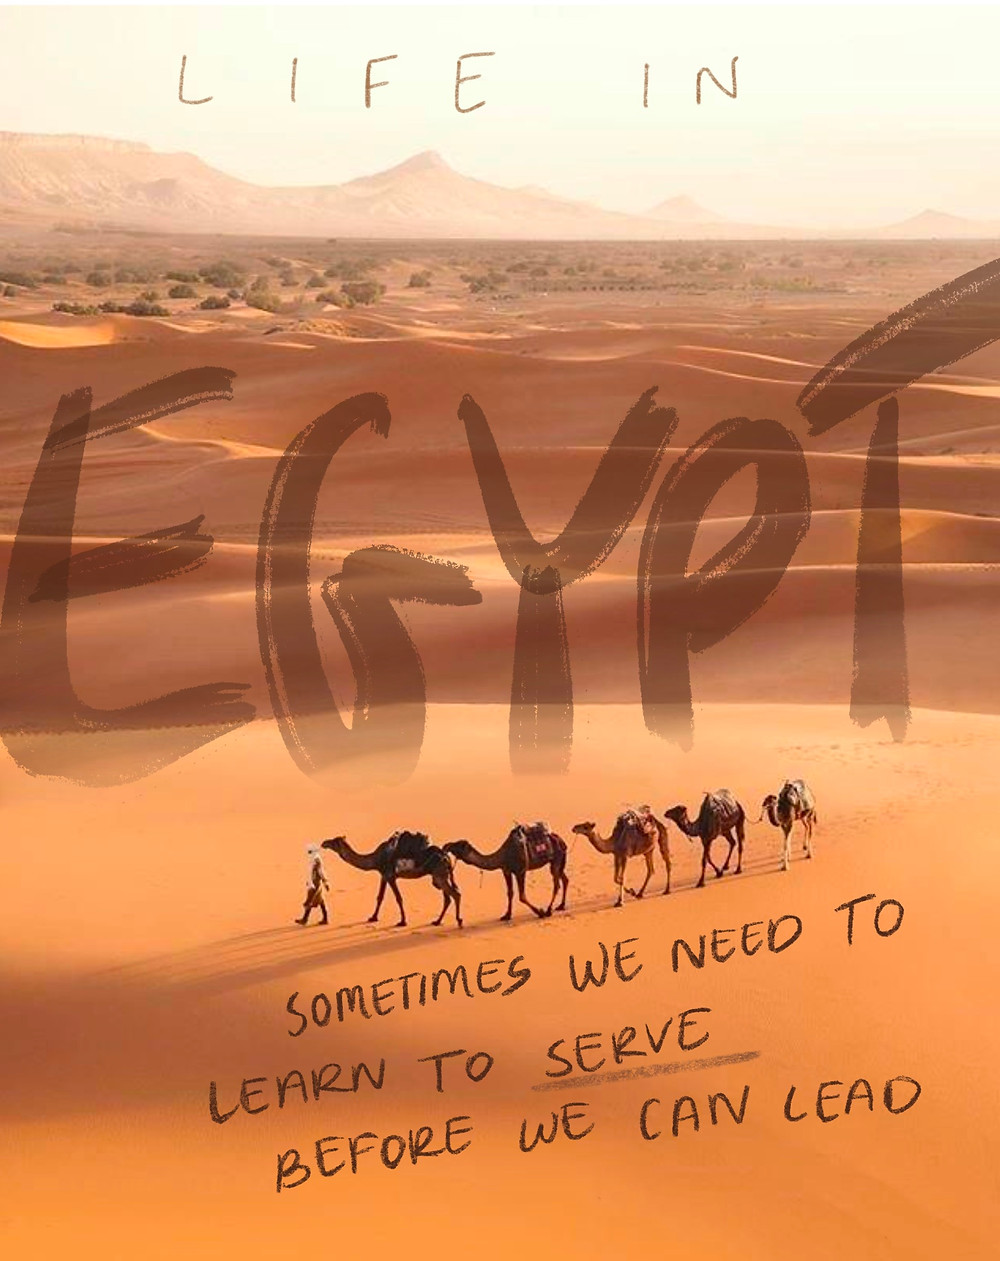 Sometimes we have to learn to serve before we can lead - Egypt camels